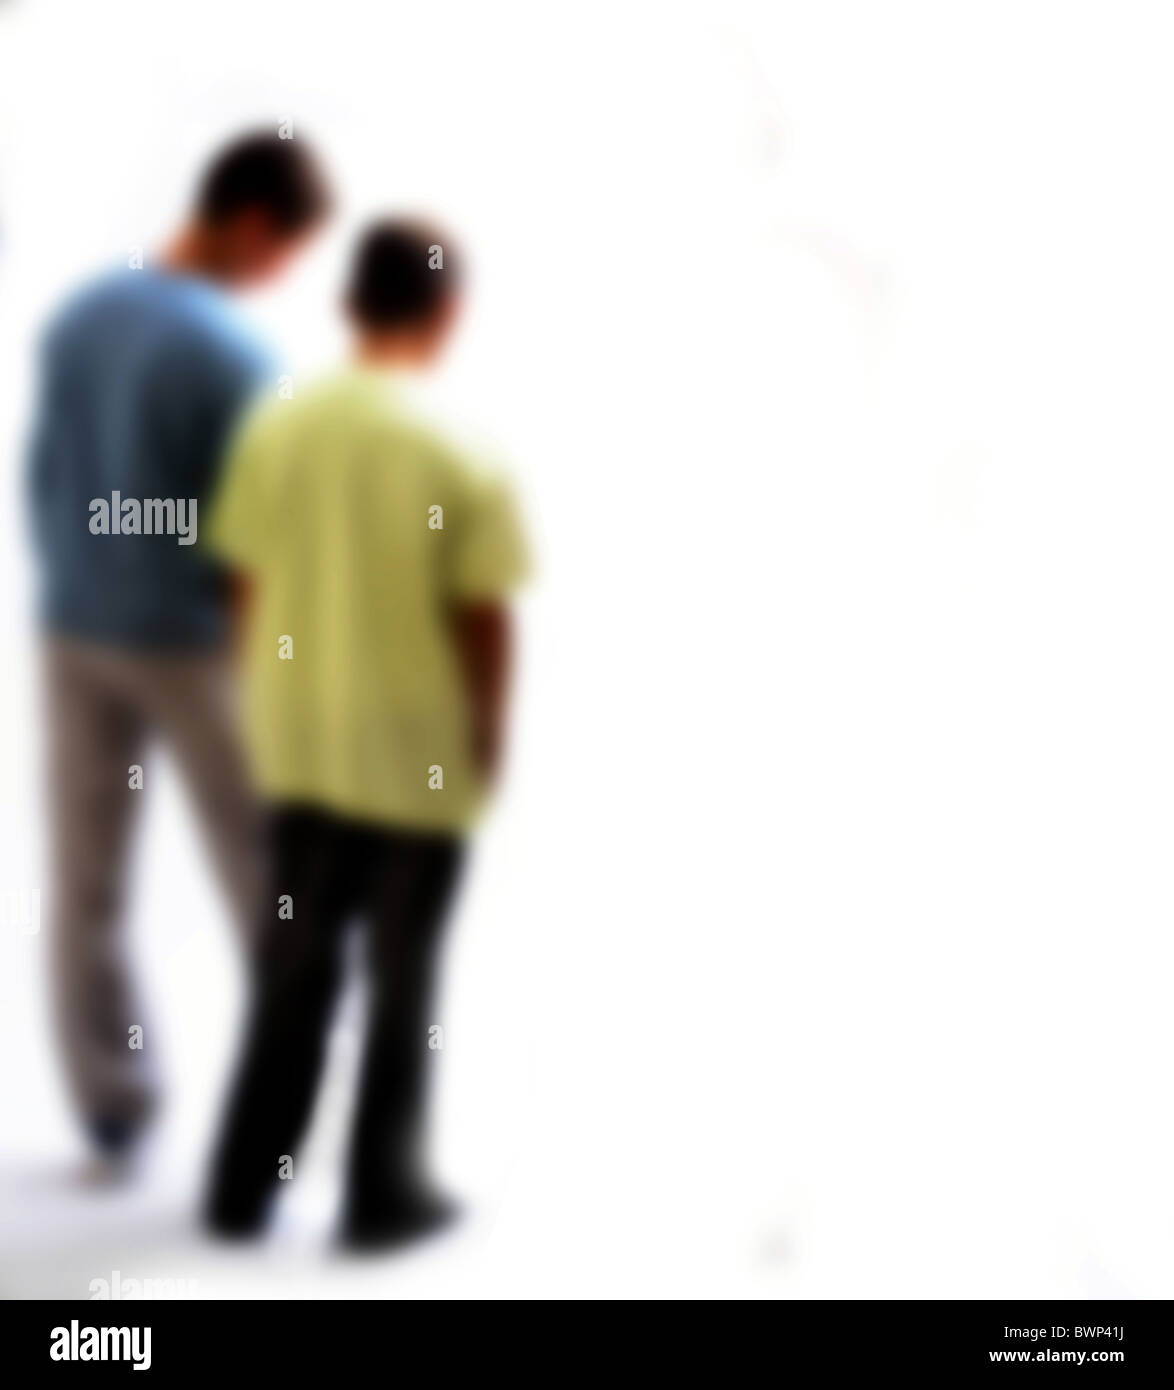 Back view of two young boys between around 10 -14 years old, back view soft focus. - Stock Image